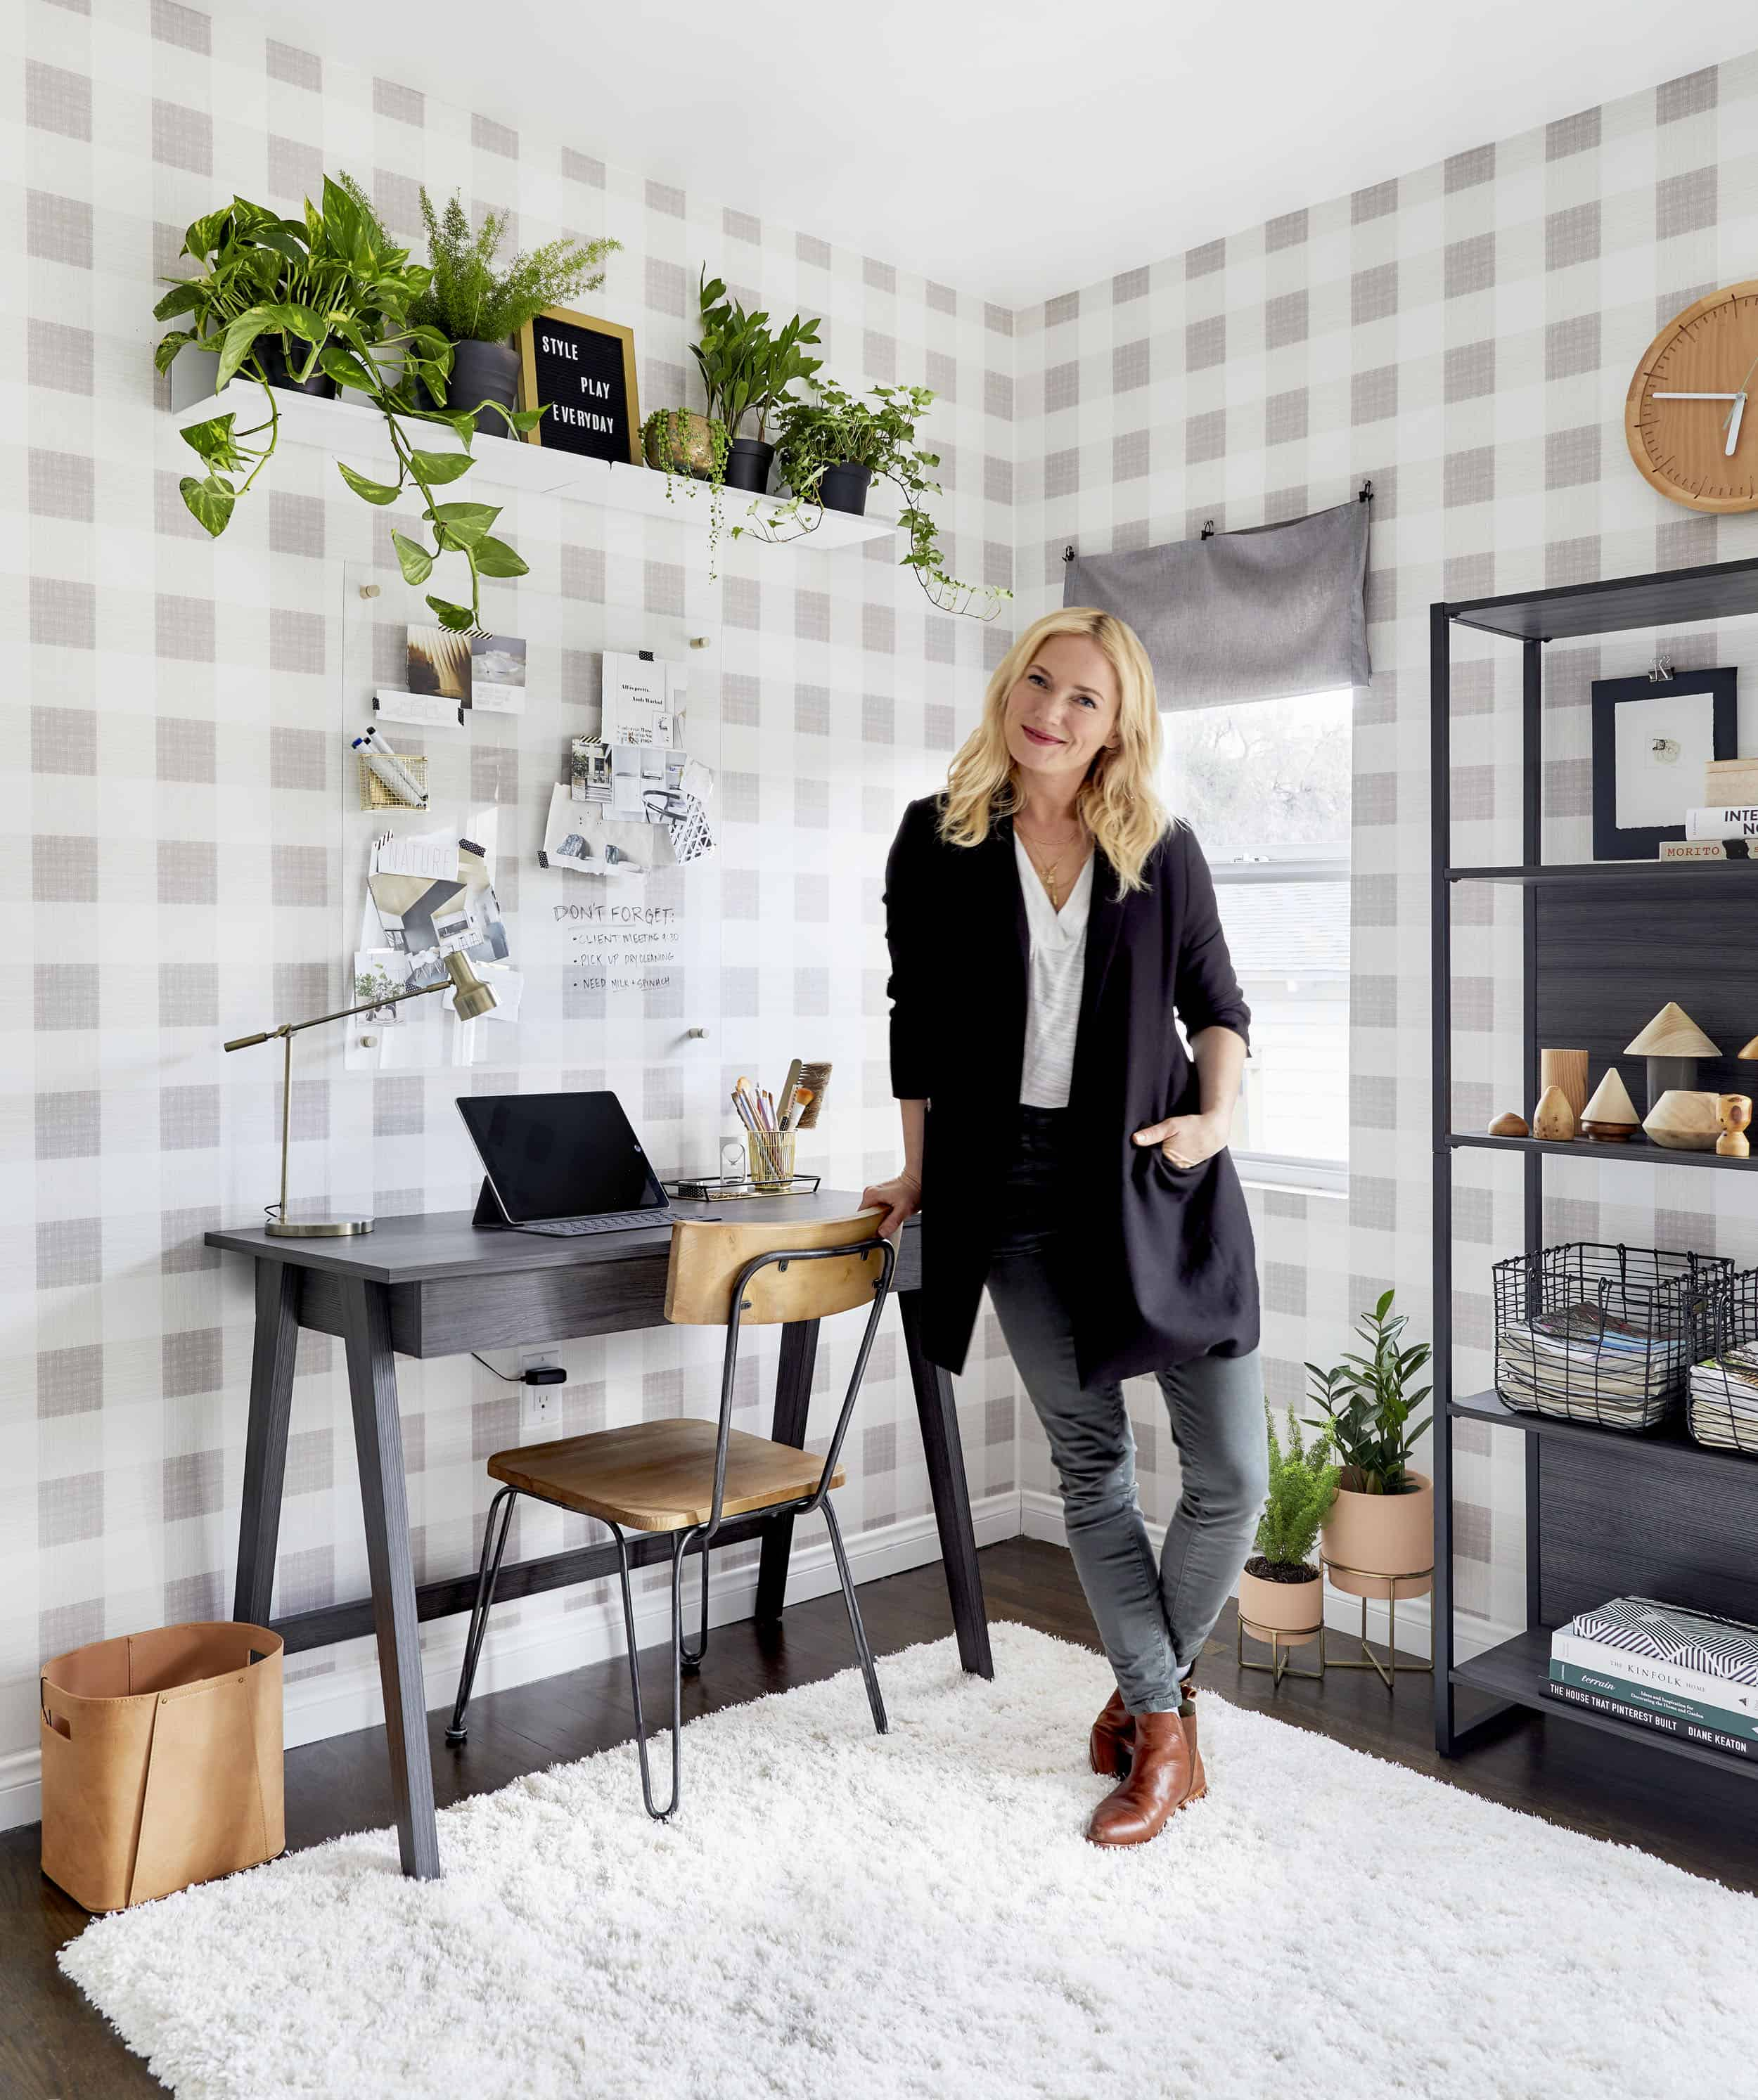 A Home Office Makeover With Threshold Removable Wallpaper By Target Emily Henderson